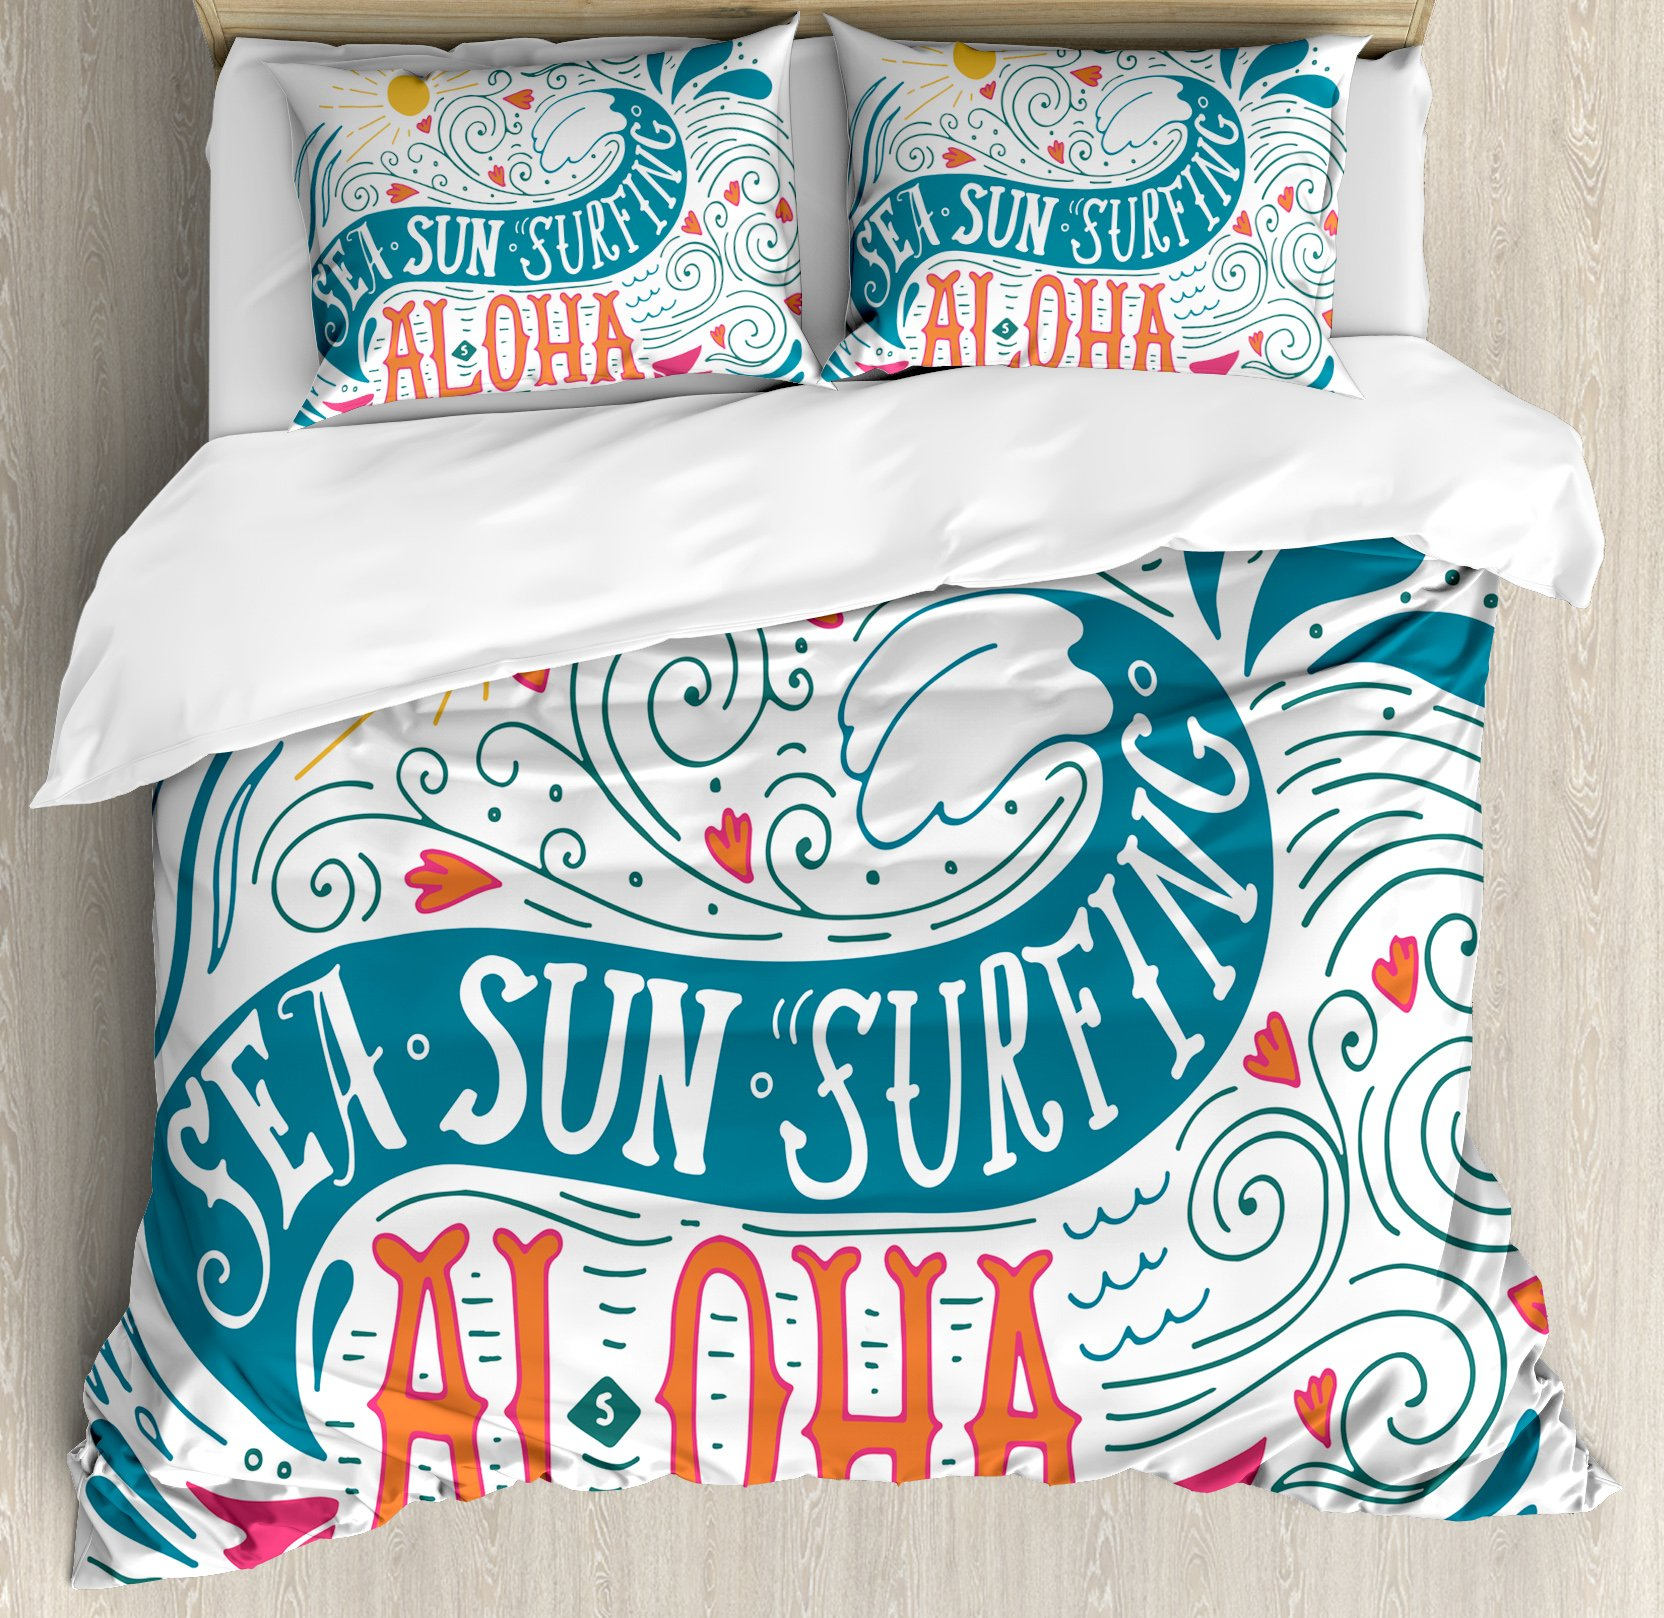 Hawaiian Queen Size Duvet Cover Set by Ambesonne, Sea Sun Surfing Typography with Ocean Waves Aloha Tropical Print, Decorative 3 Piece Bedding Set with 2 Pillow Shams, Petrol Blue Orange Pink